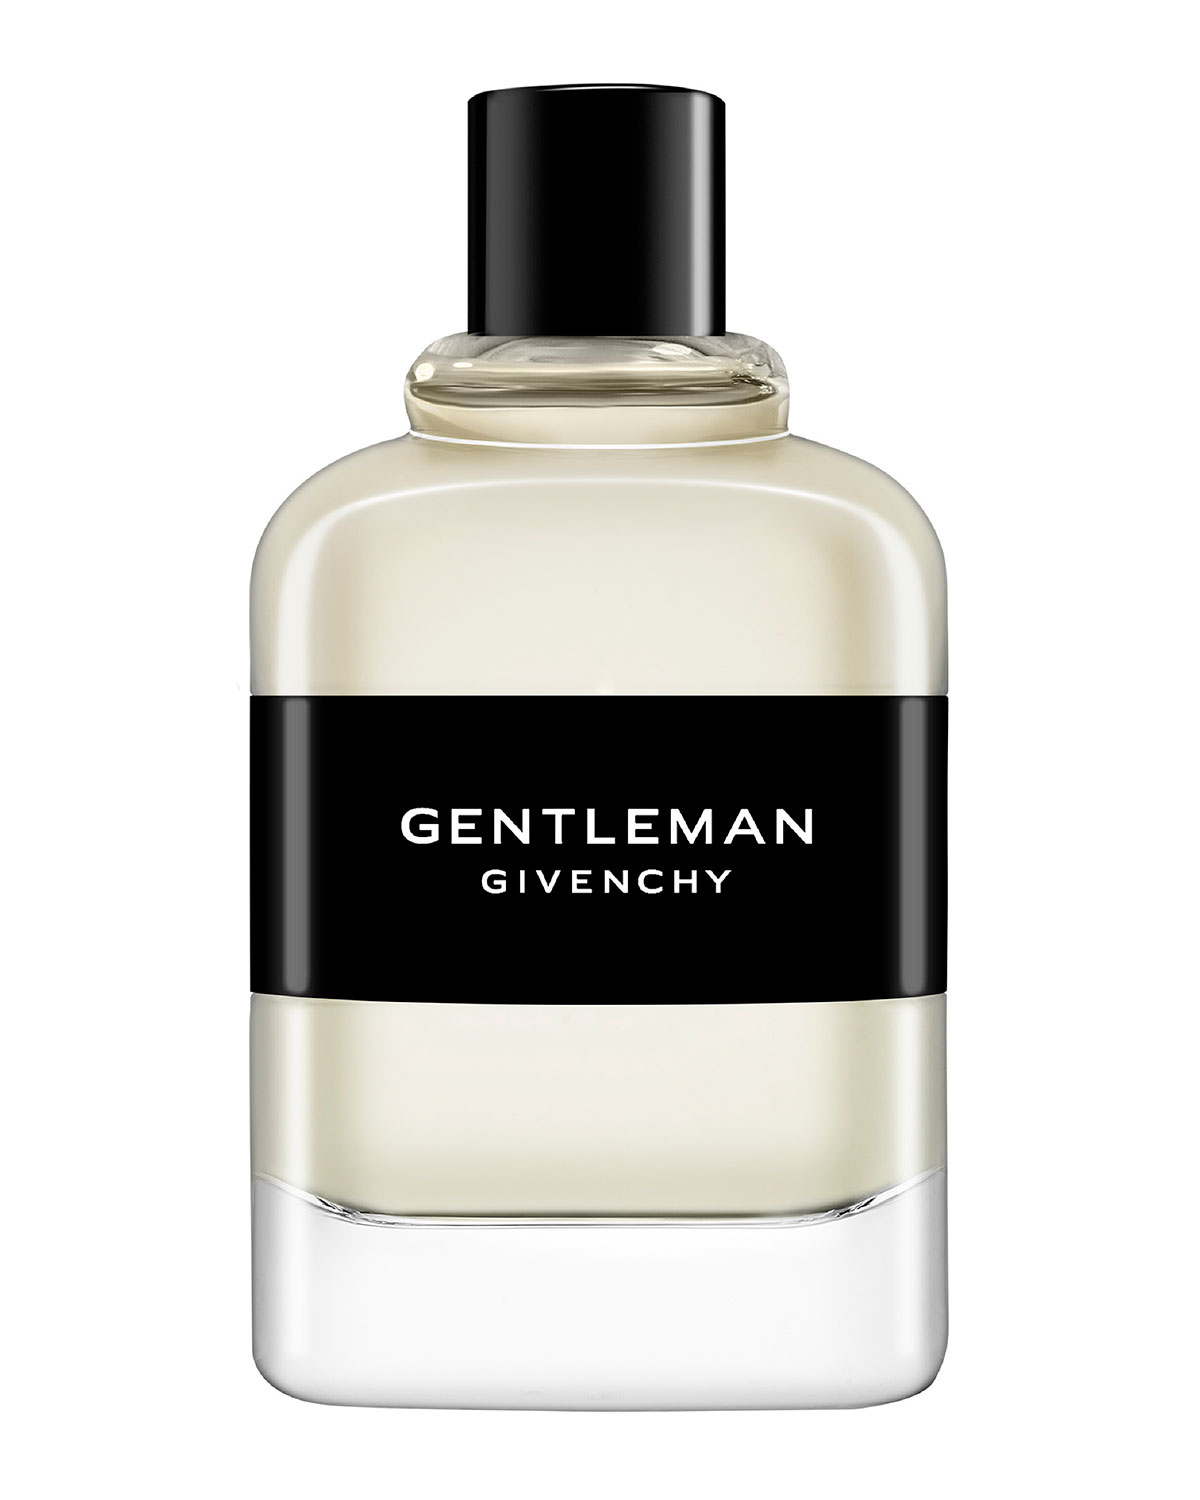 Givenchy Gentleman Givenchy Eau De Toilette 34 Oz 100 Ml